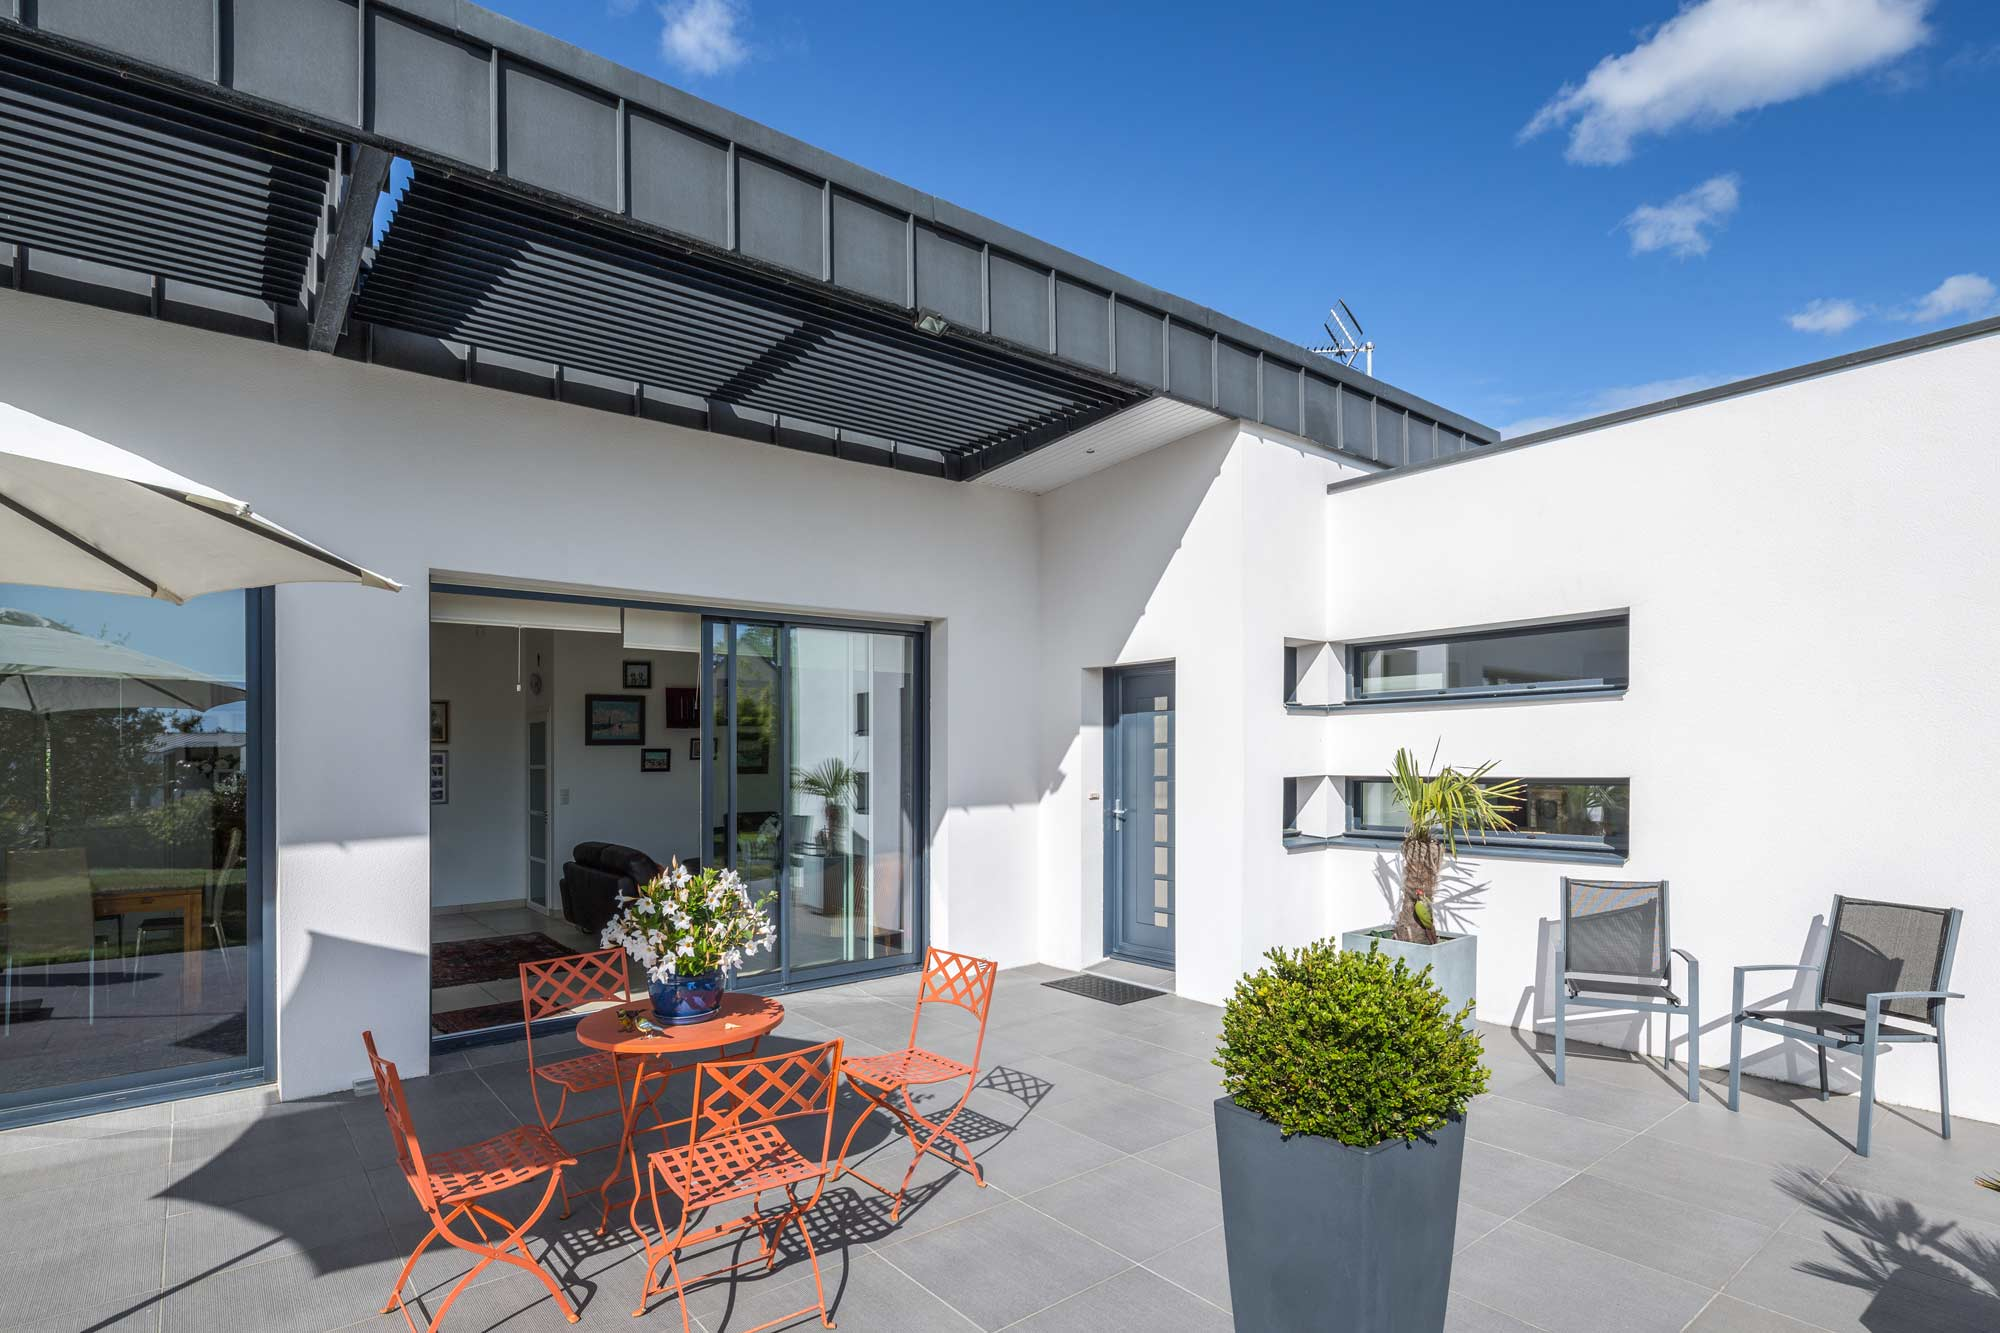 Contemporaine-plain-pied-architecte-VANNES-3